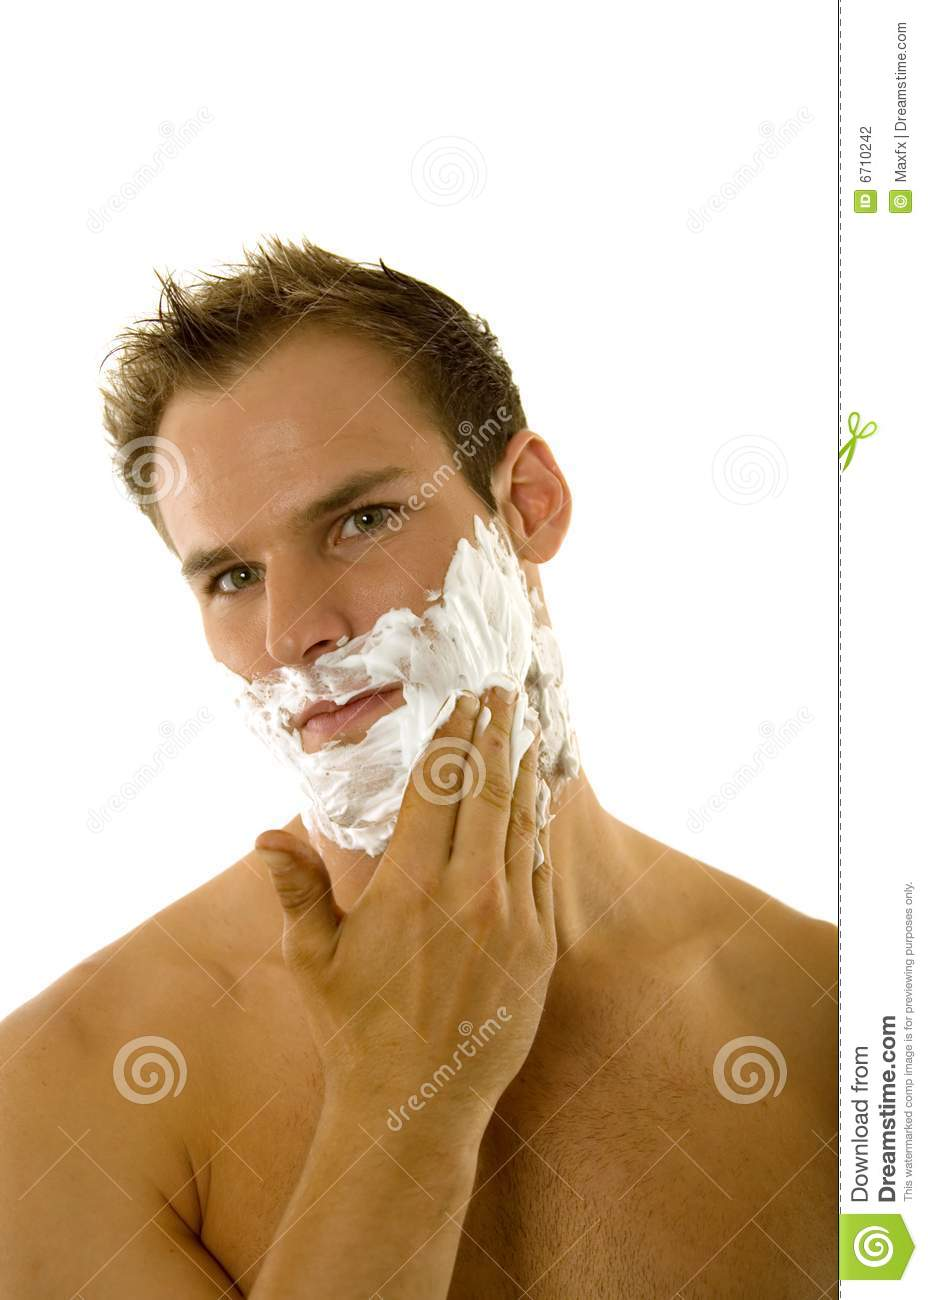 Young Man Applying Shaving Cream To His Face Stock Photo